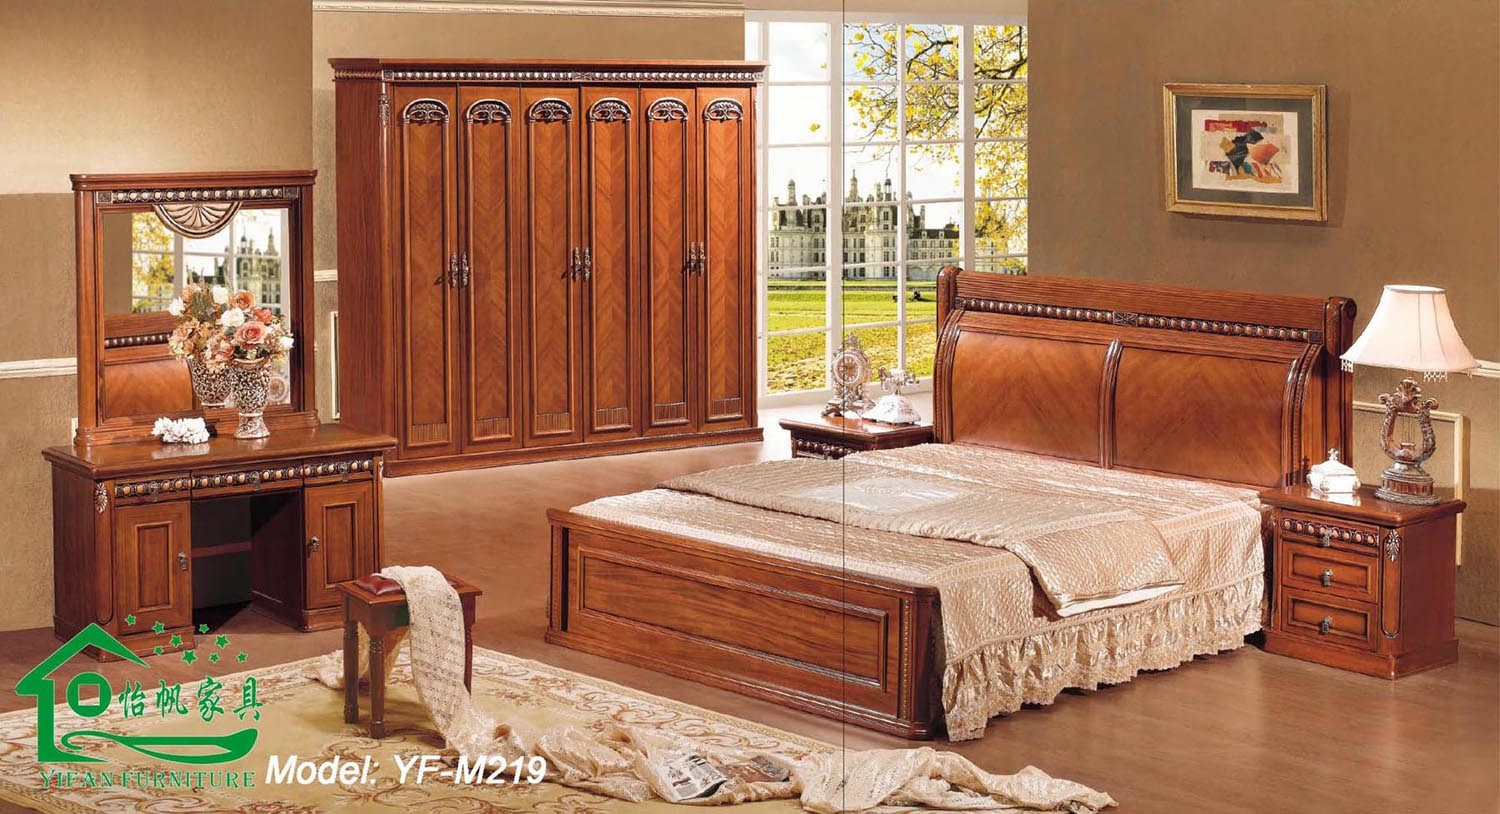 Wooden Bedroom Furniture with 80 Inch Length Wood Bed (YF-M219